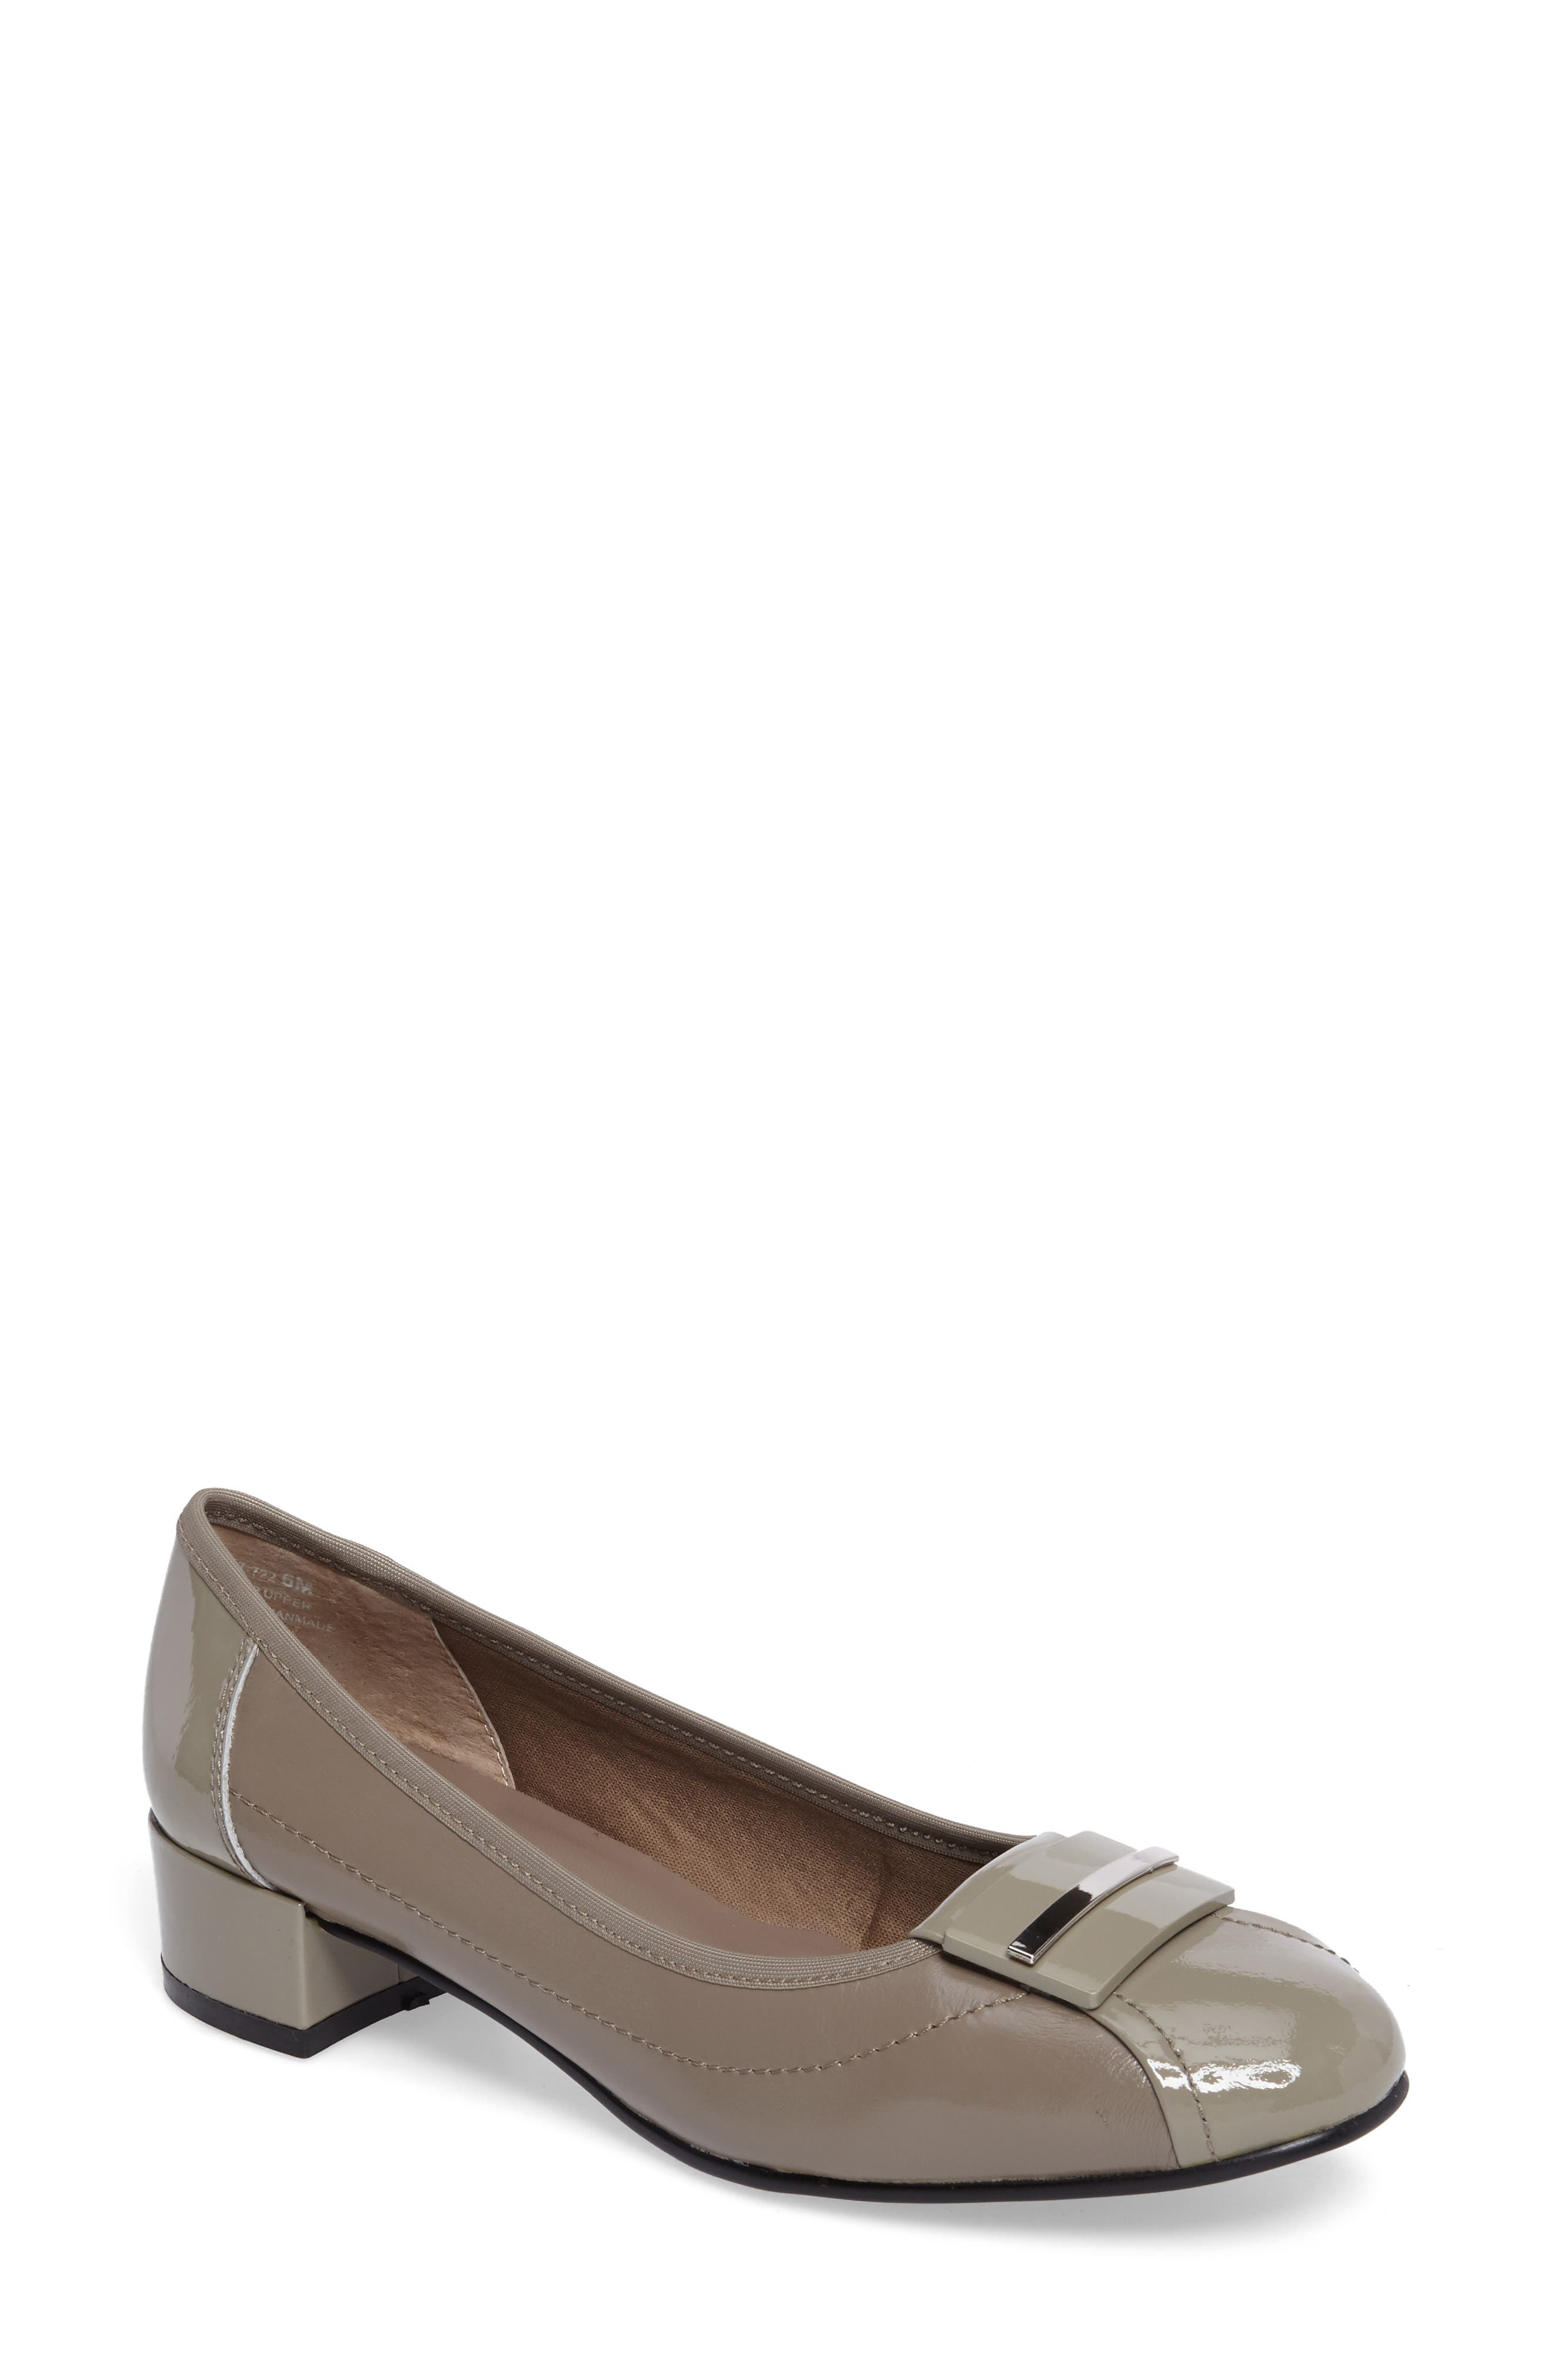 Ideal Pump,                             Main thumbnail 1, color,                             Taupe Patent Leather